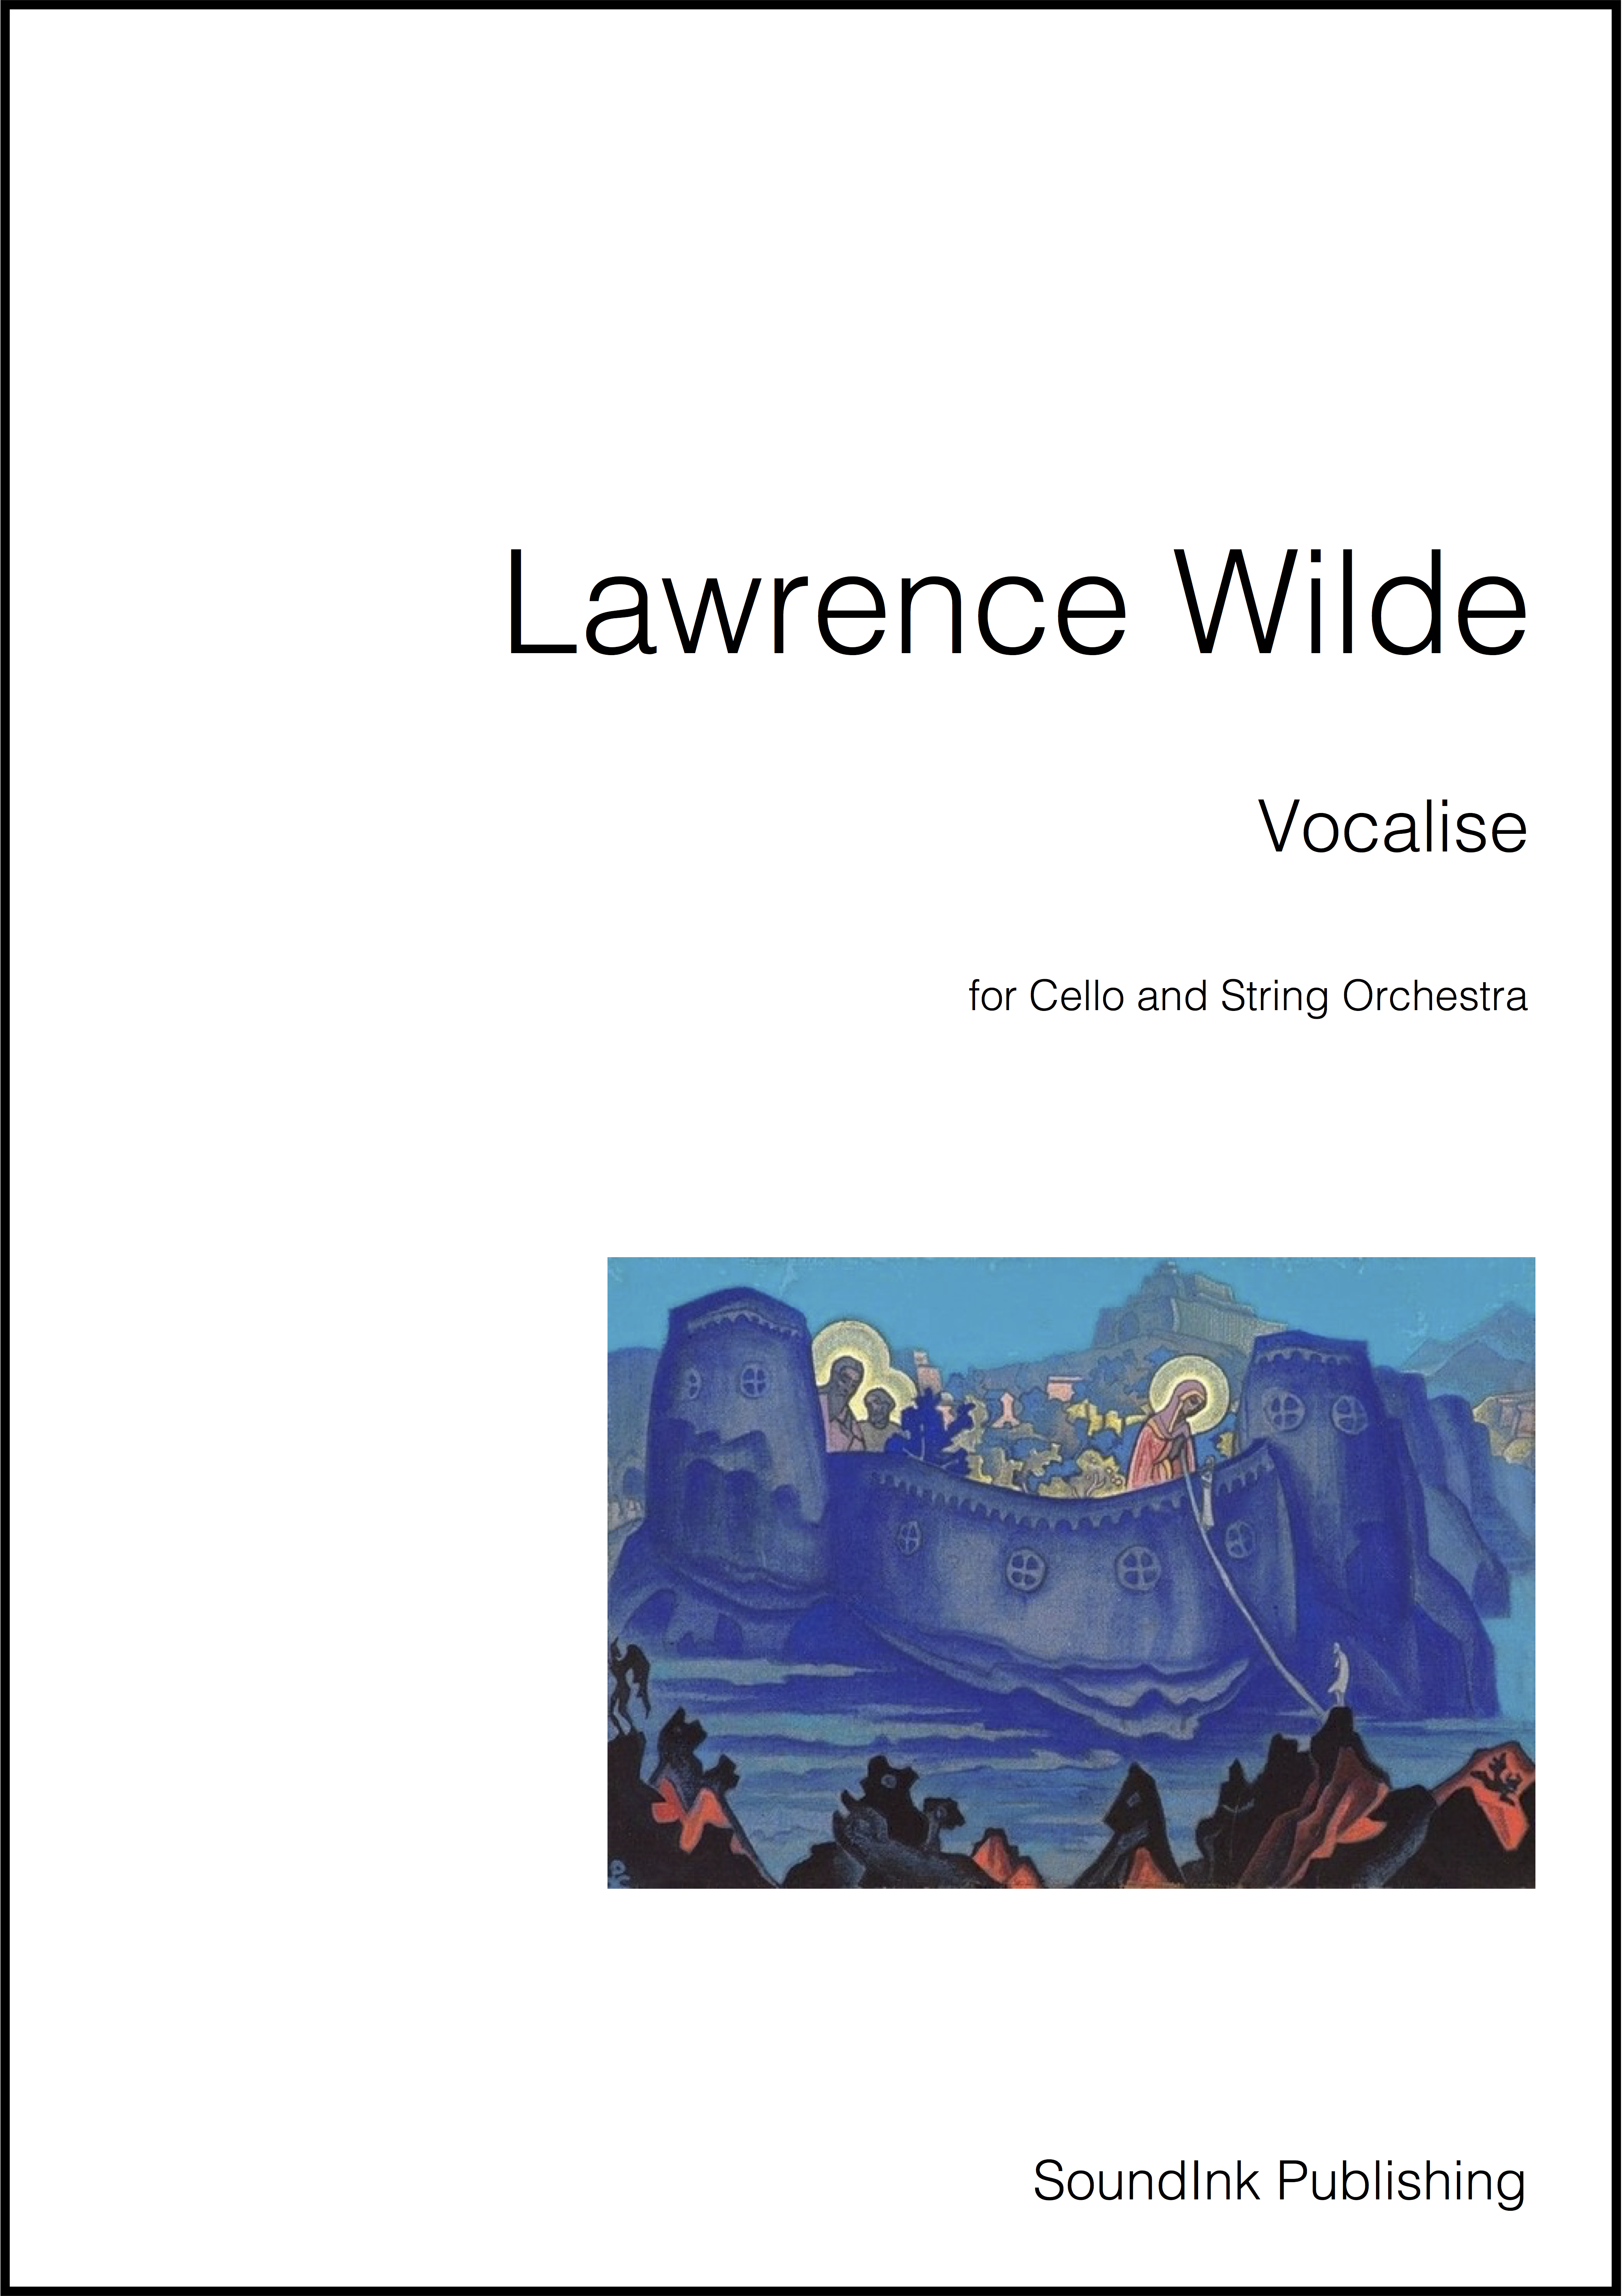 Vocalise for Cello and String Orchestra (Cover Page)